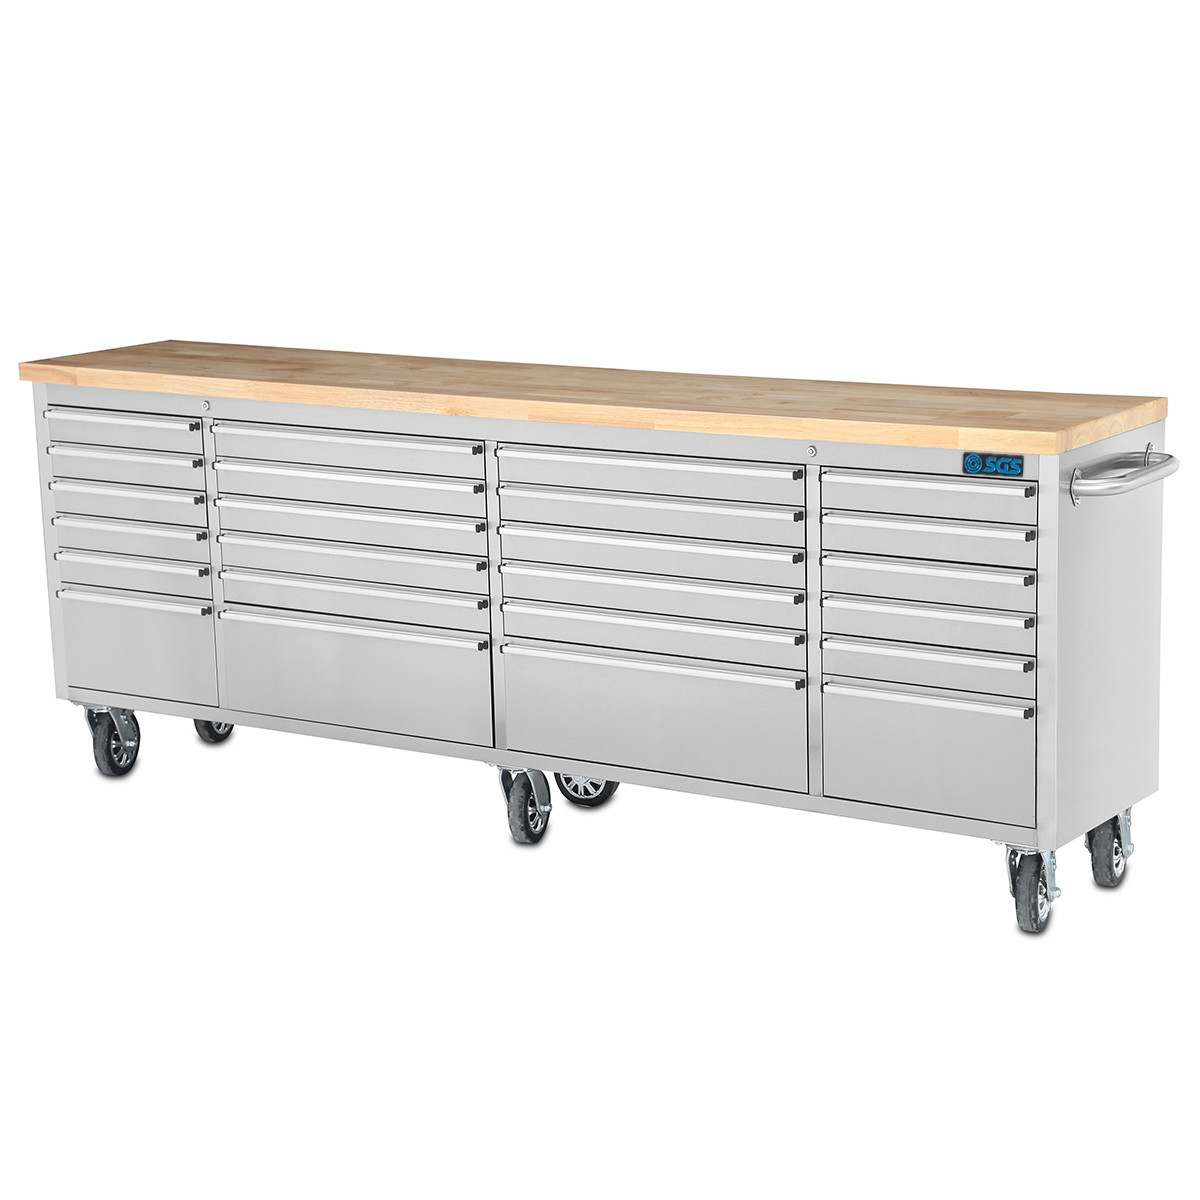 Admirable Sgs 96 Stainless Steel 24 Drawer Work Bench Tool Chest Cabinet Spiritservingveterans Wood Chair Design Ideas Spiritservingveteransorg